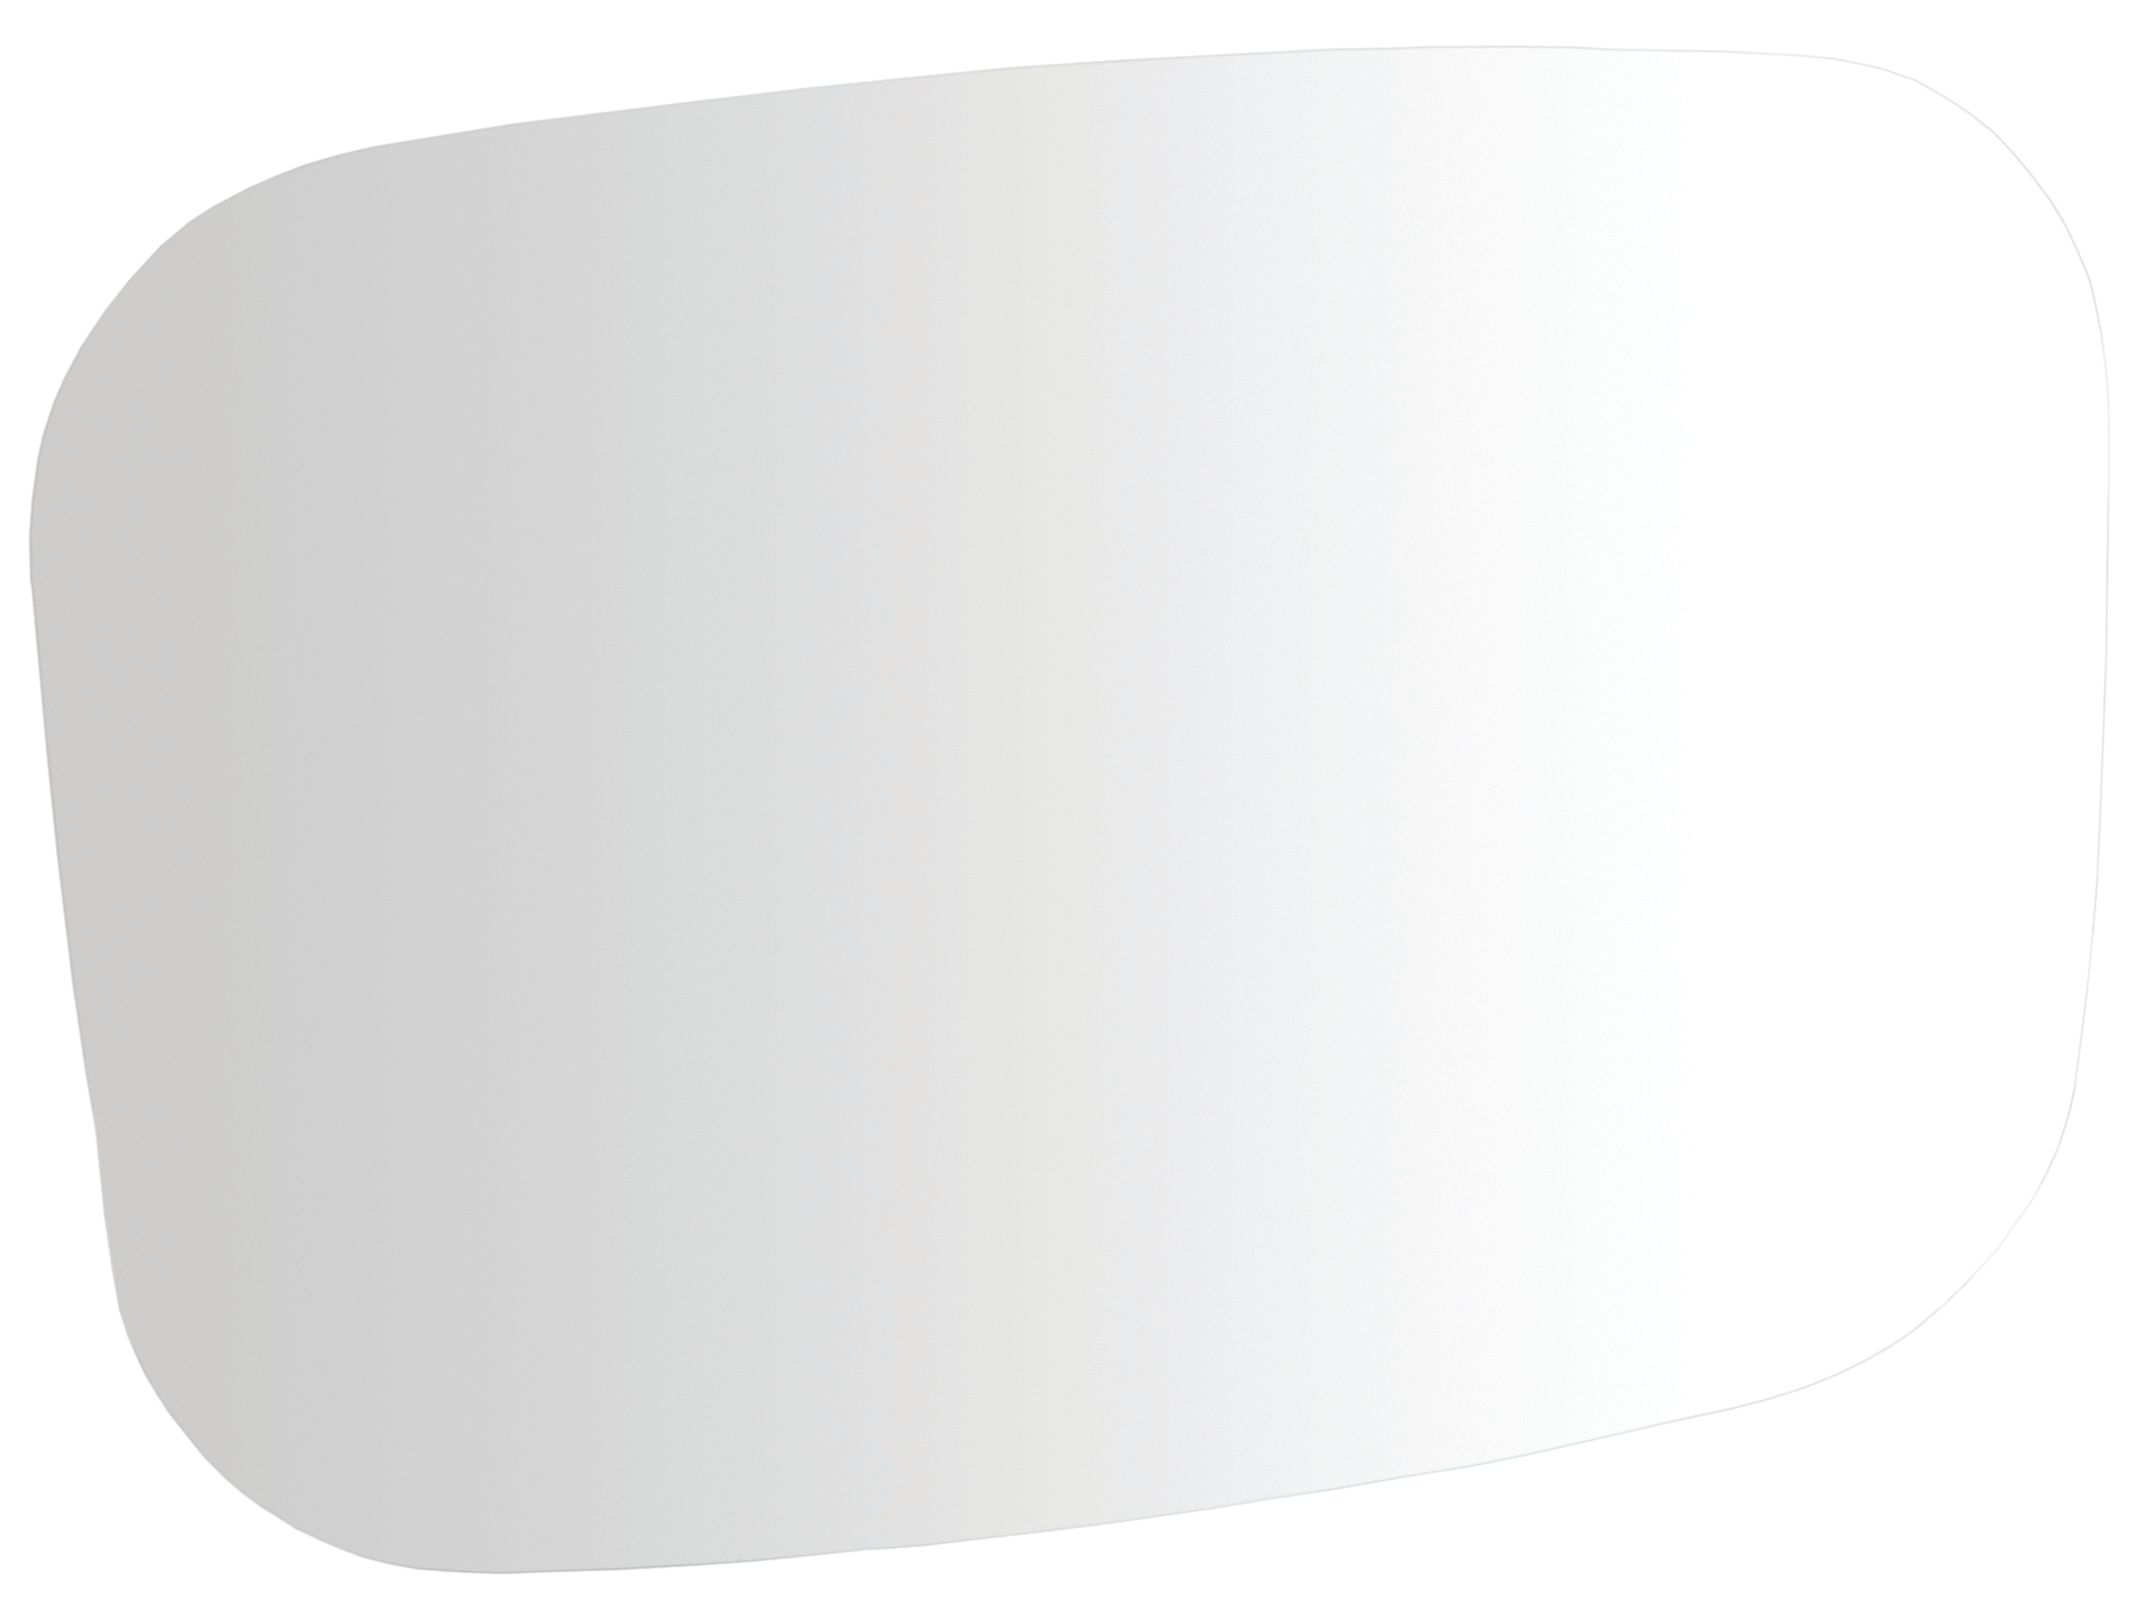 FIAT MIRROR GLASS-FOR S.10781/26216 10782